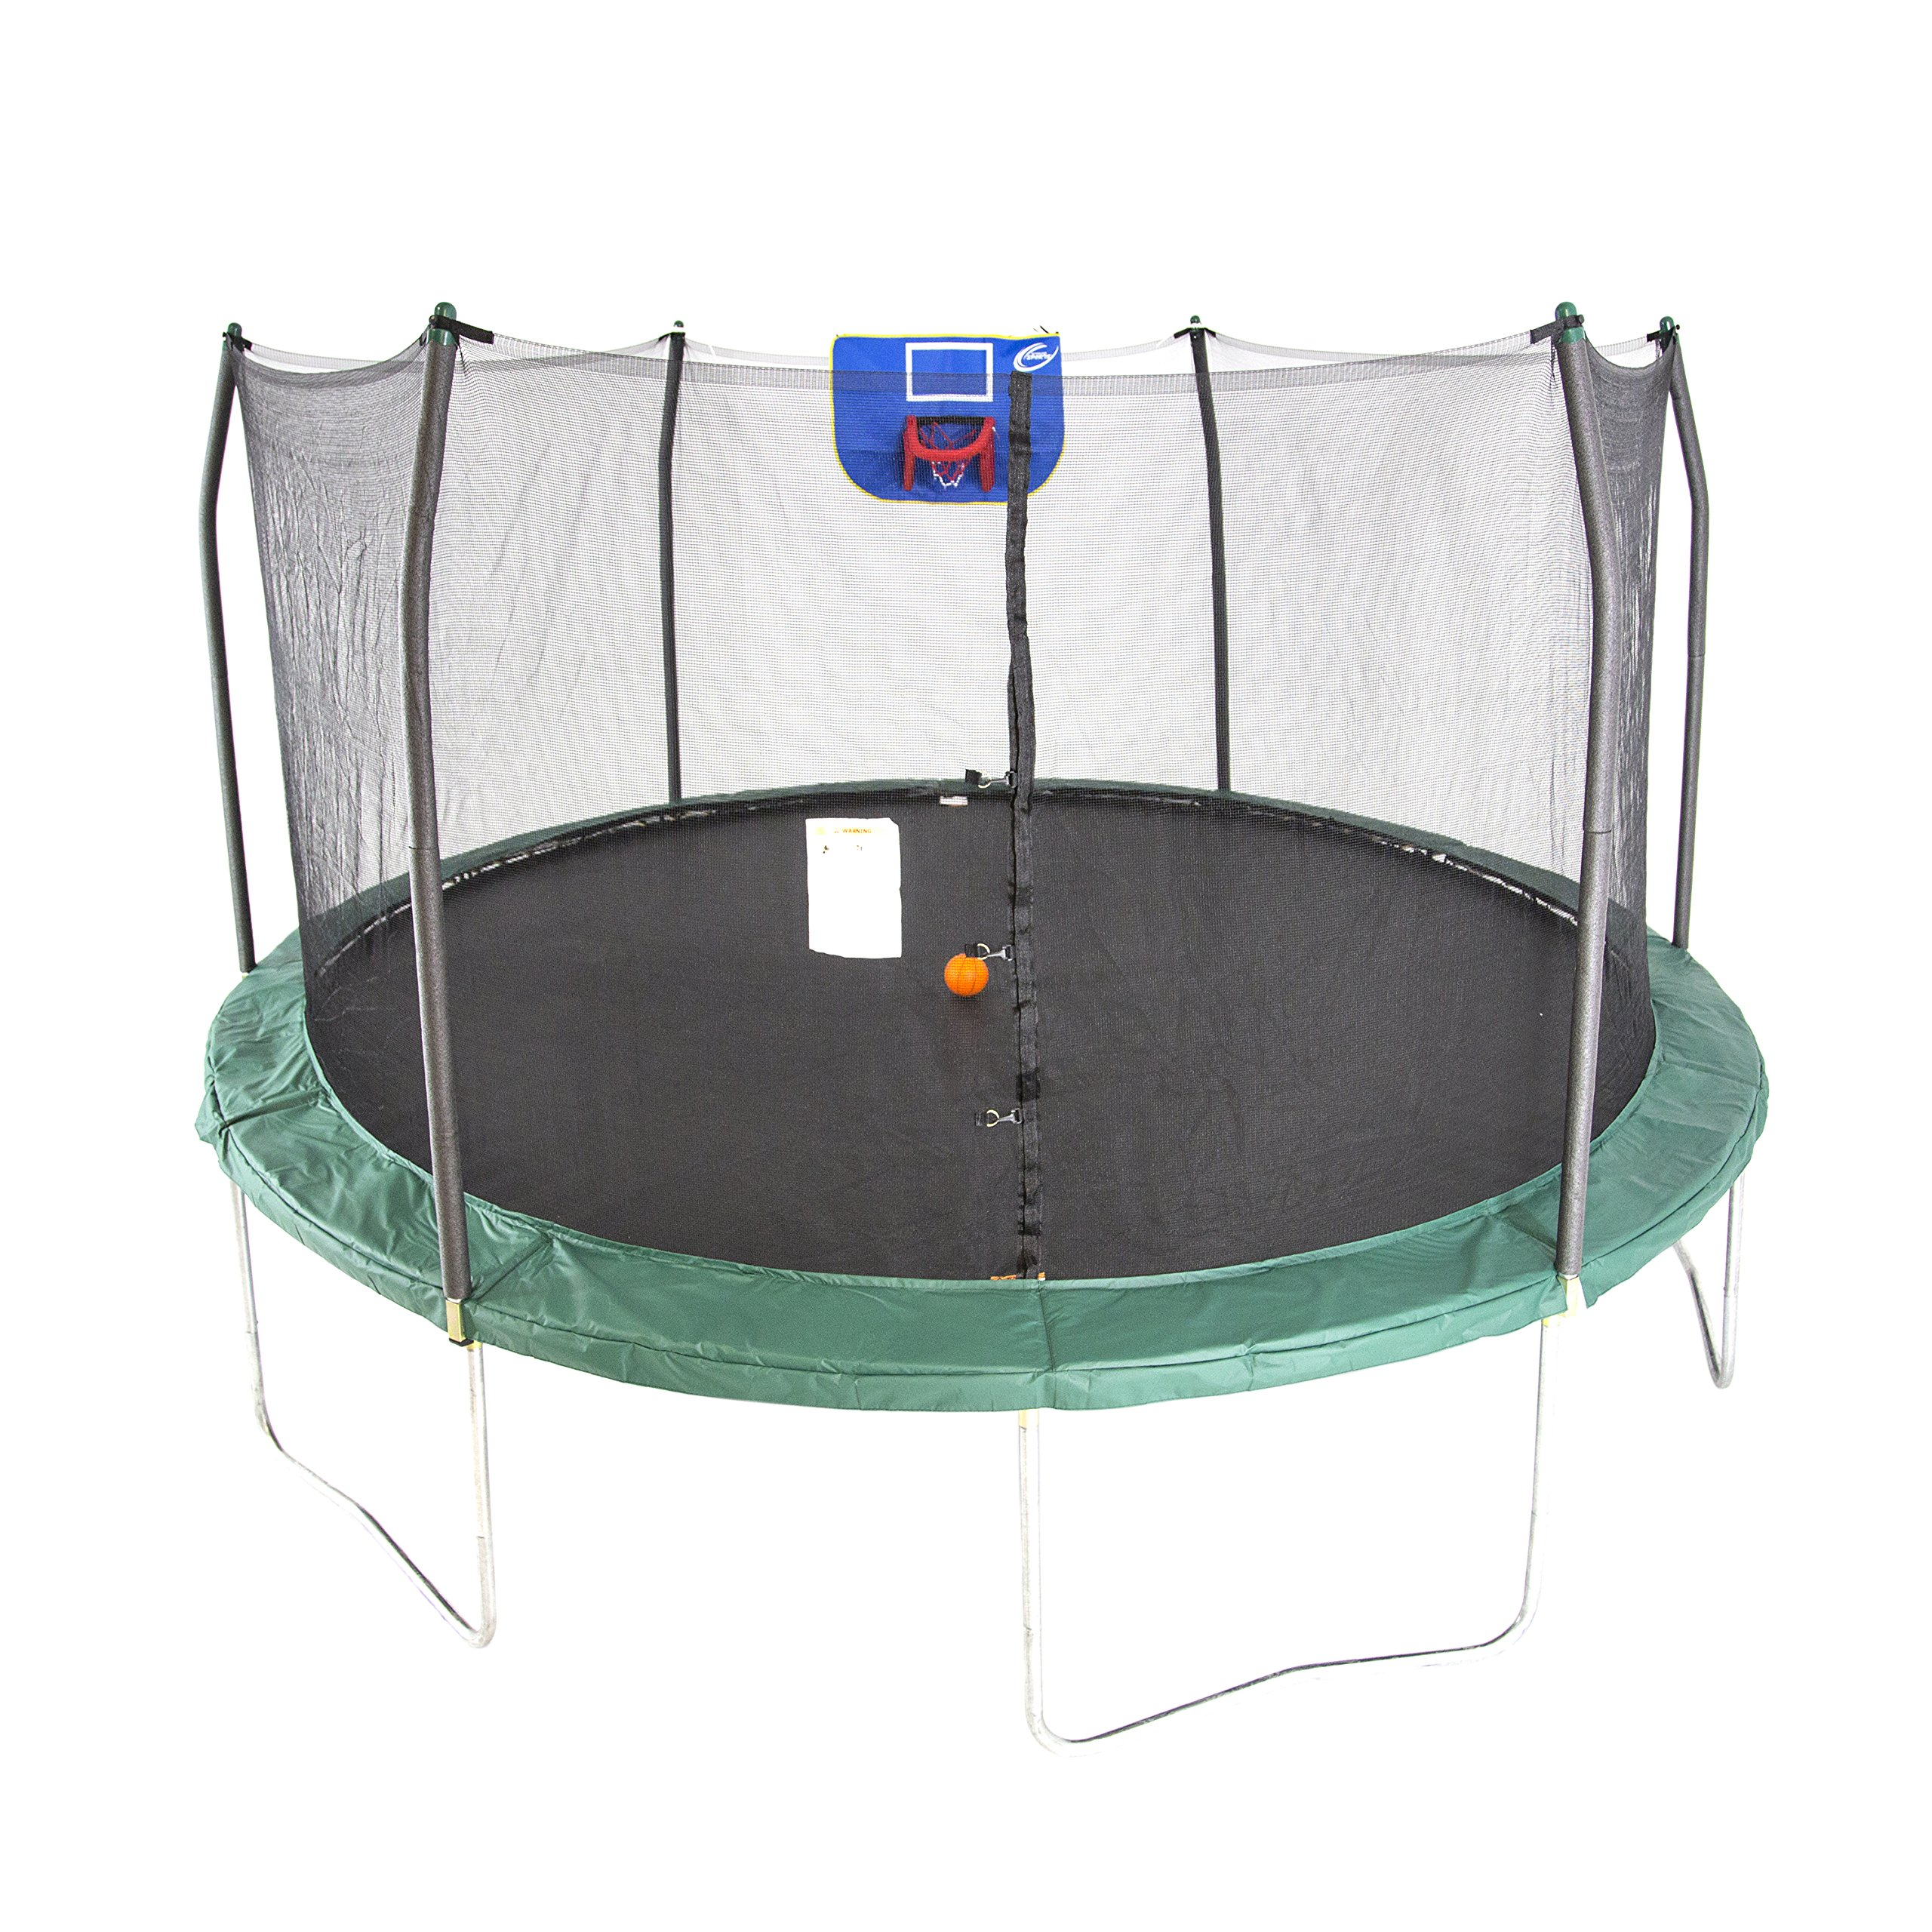 Safest Top Rated Trampolines: Best Rated In Trampolines & Helpful Customer Reviews